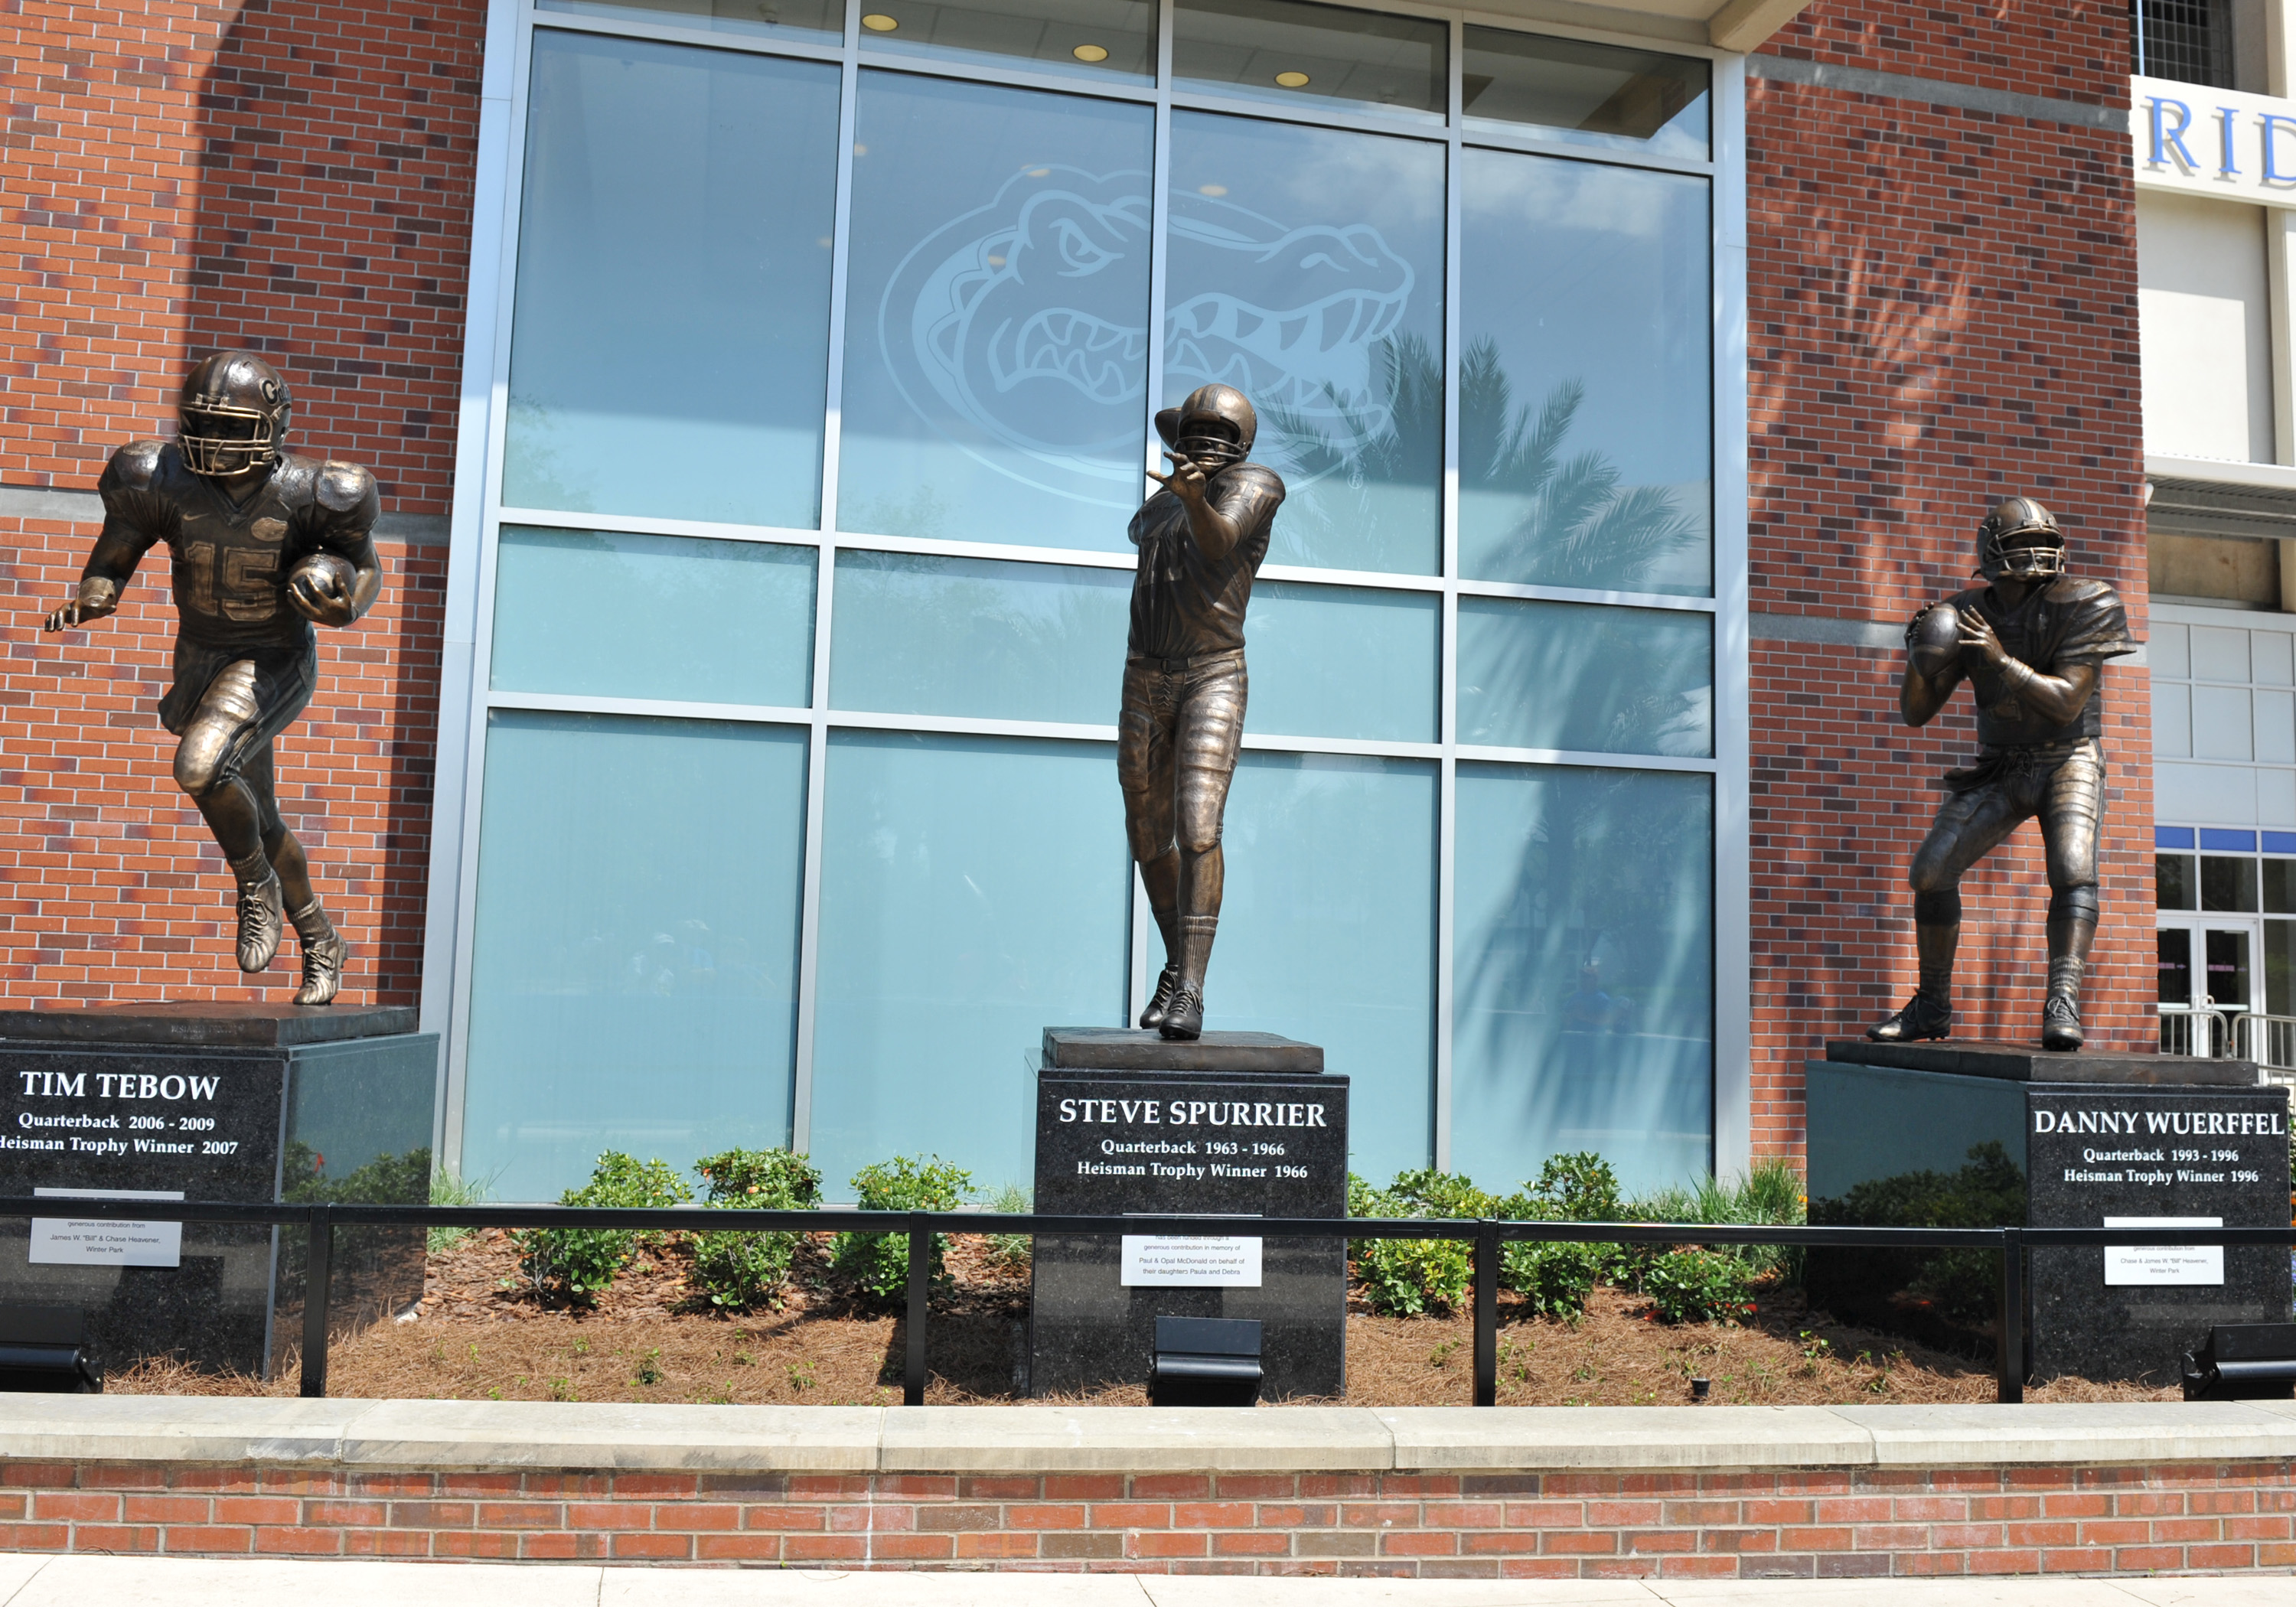 Steve Spurrier, Danny Wuerffel and Tim Tebow have been immortalized outside Florida Field.